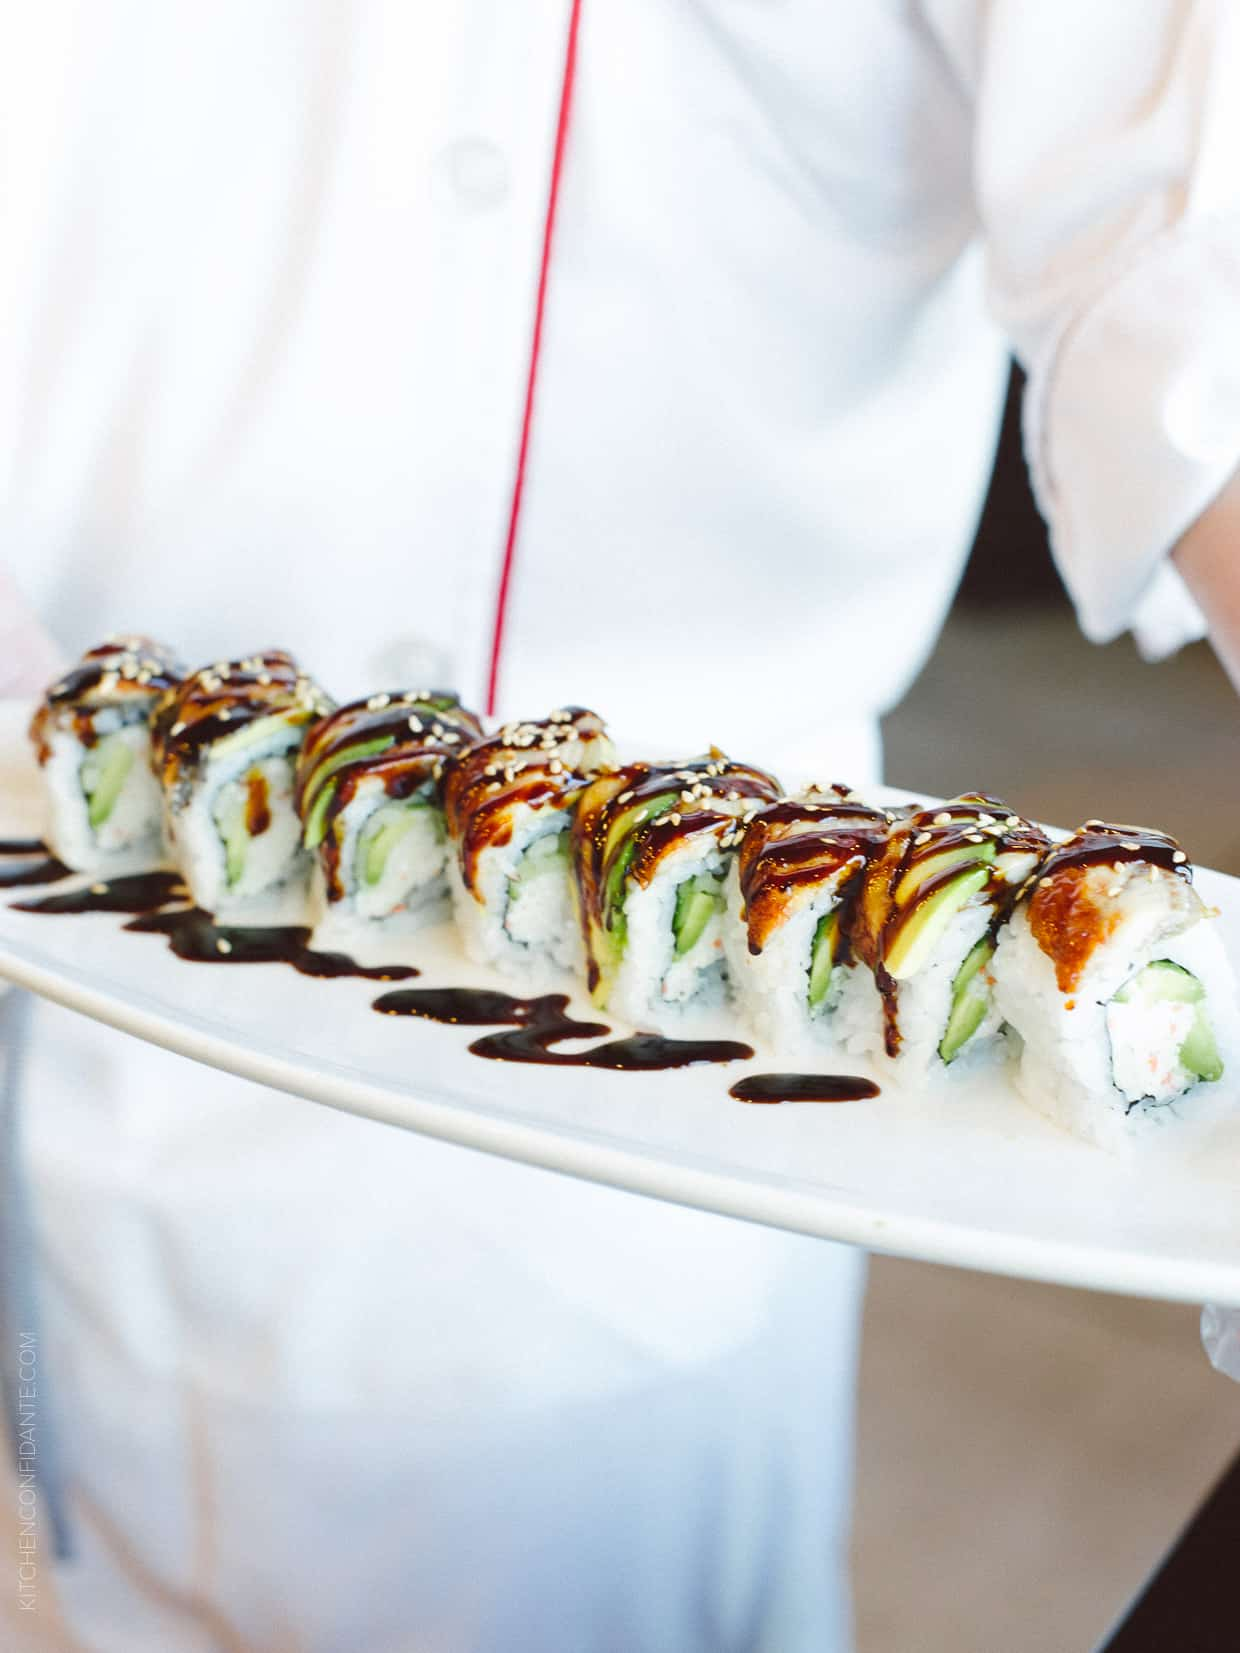 Beautifully made sushi needs just one thing. The perfectly paired sake.